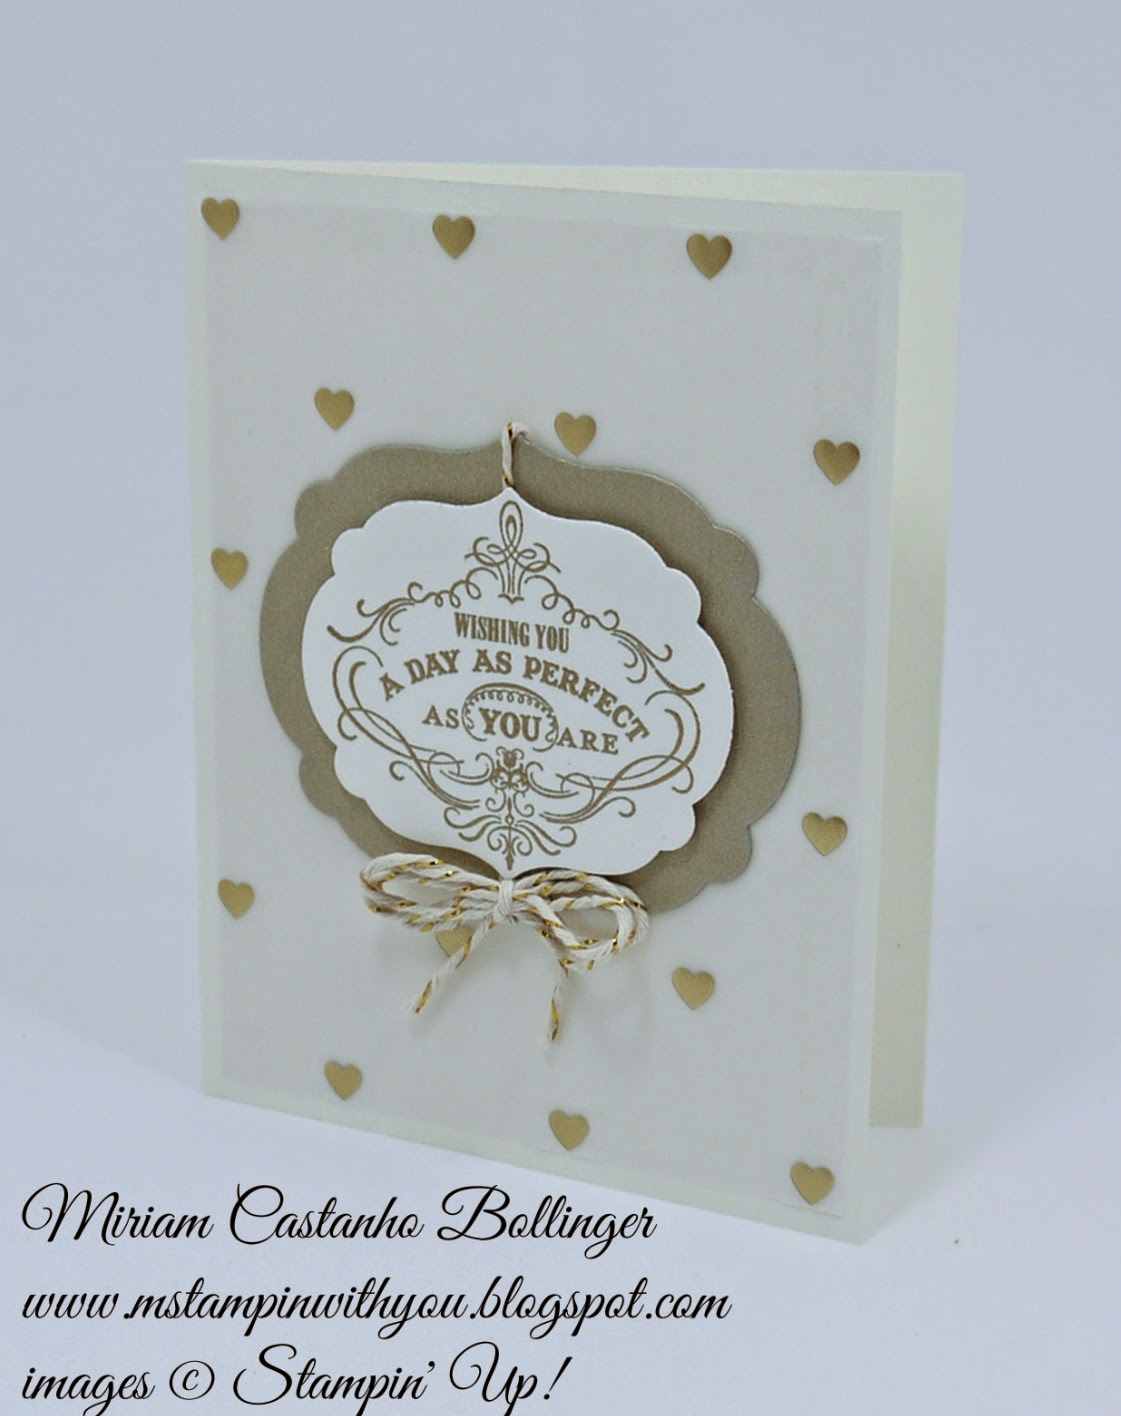 Wedding card, Miriam Castanho Bollinger, #mstampinwithyou, stampin up, demonstrator, gold foil vellum, labels collection, su